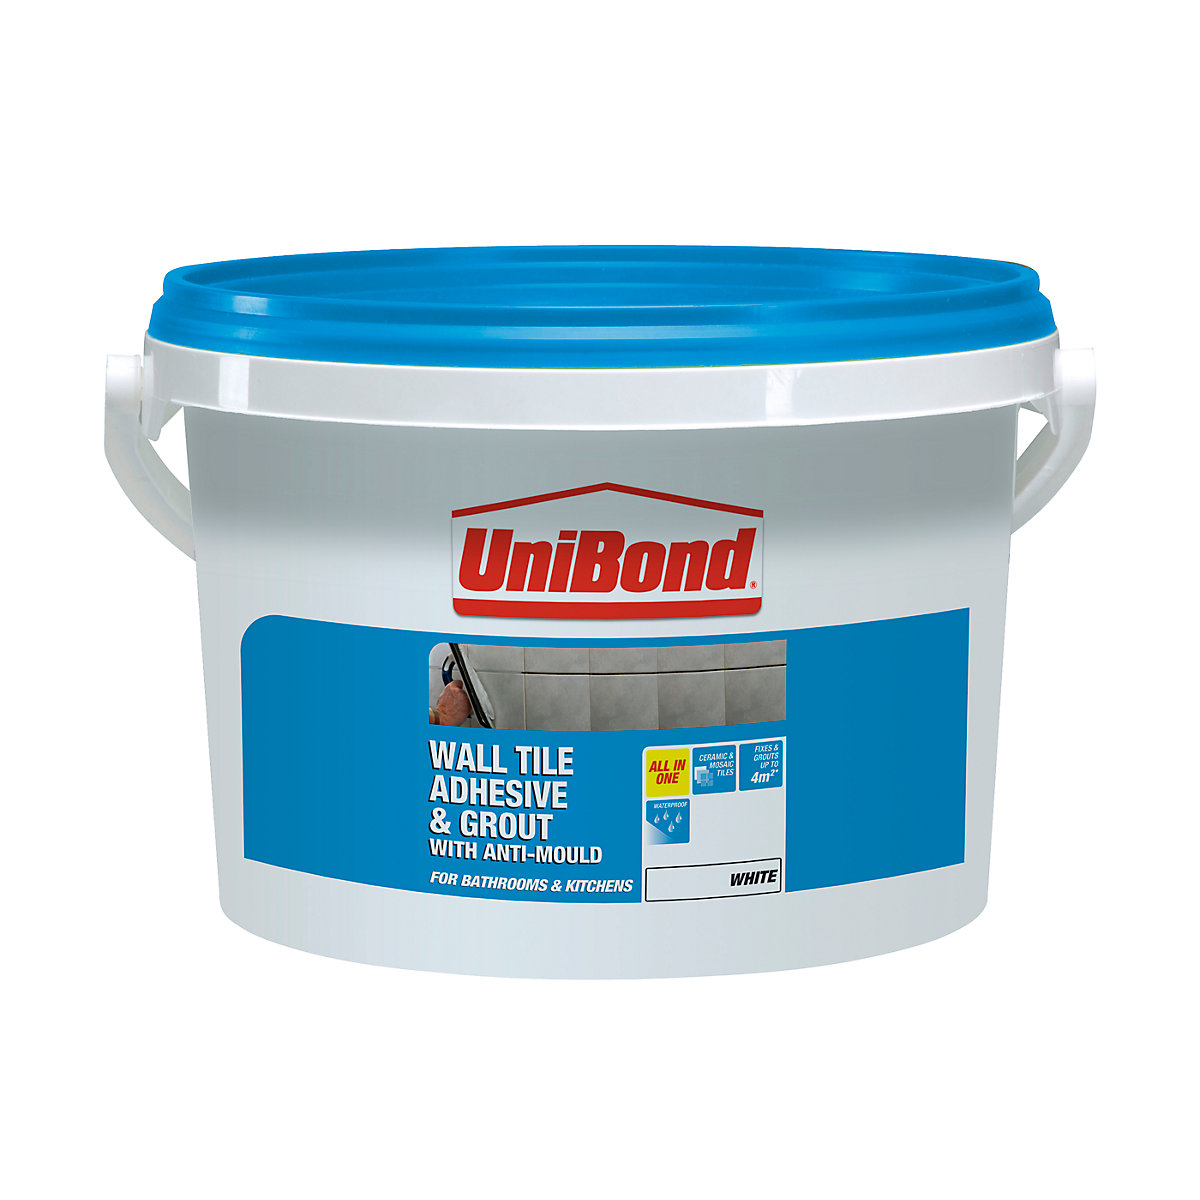 Unibond all purpose wall tile adhesivegrout large 5l travis perkins unibond all purpose wall tile adhesivegrout large 5l dailygadgetfo Images